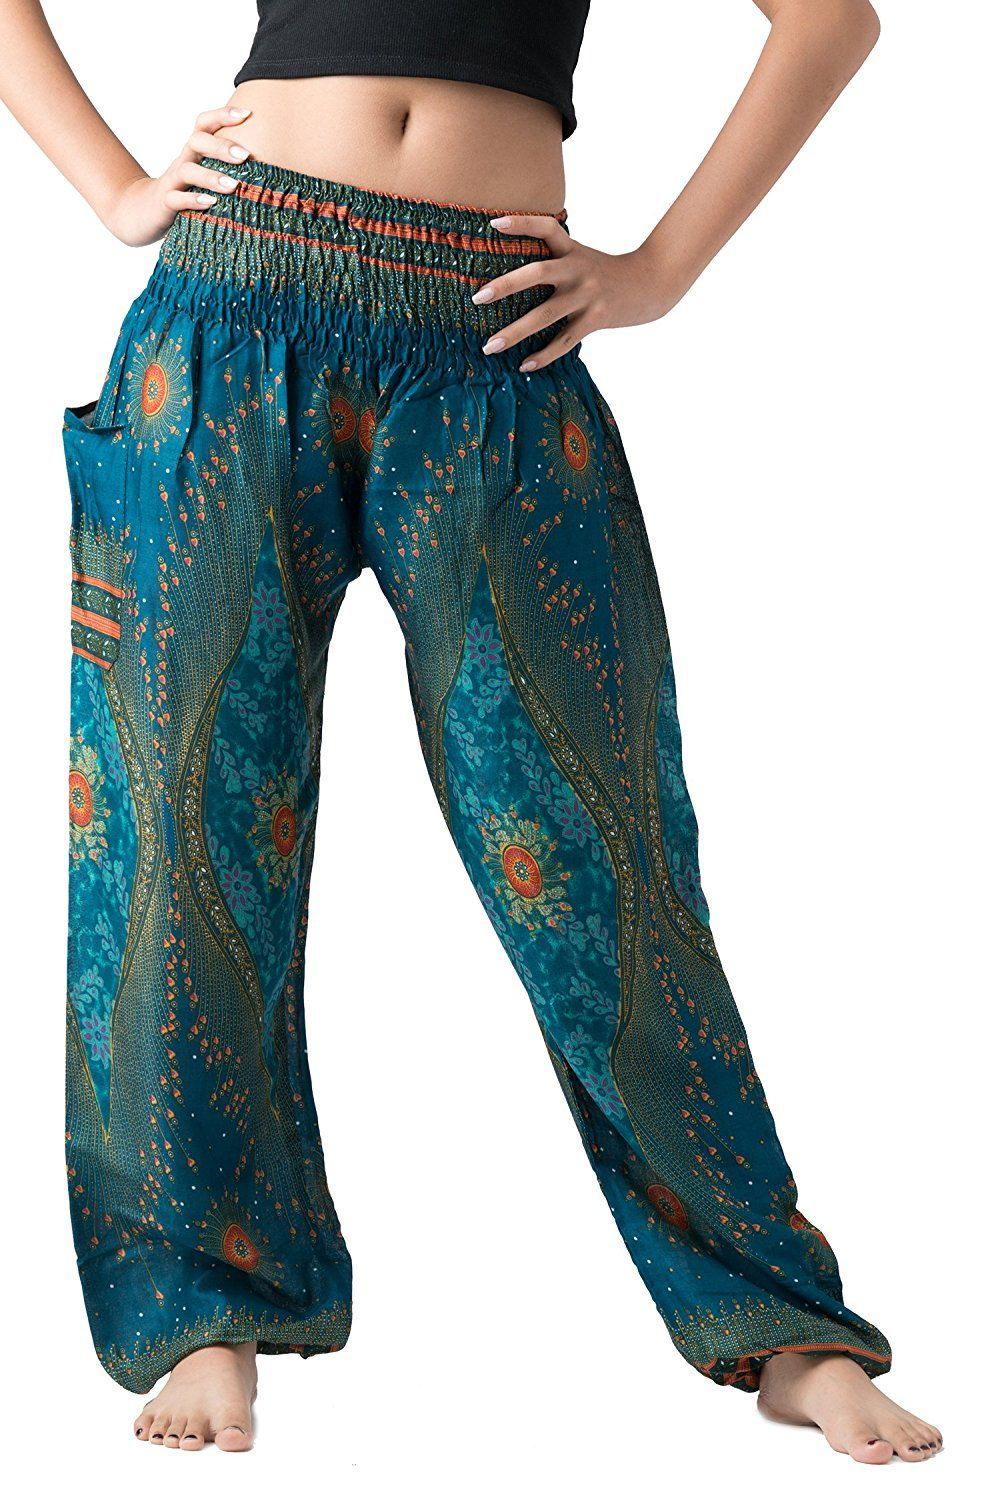 Bangkokpants Women S Boho Pants Hippie Clothes Yoga Outfits Peacock Design One Size Fits Green At Amazon Women S Clothing Store Pantalones Leggins